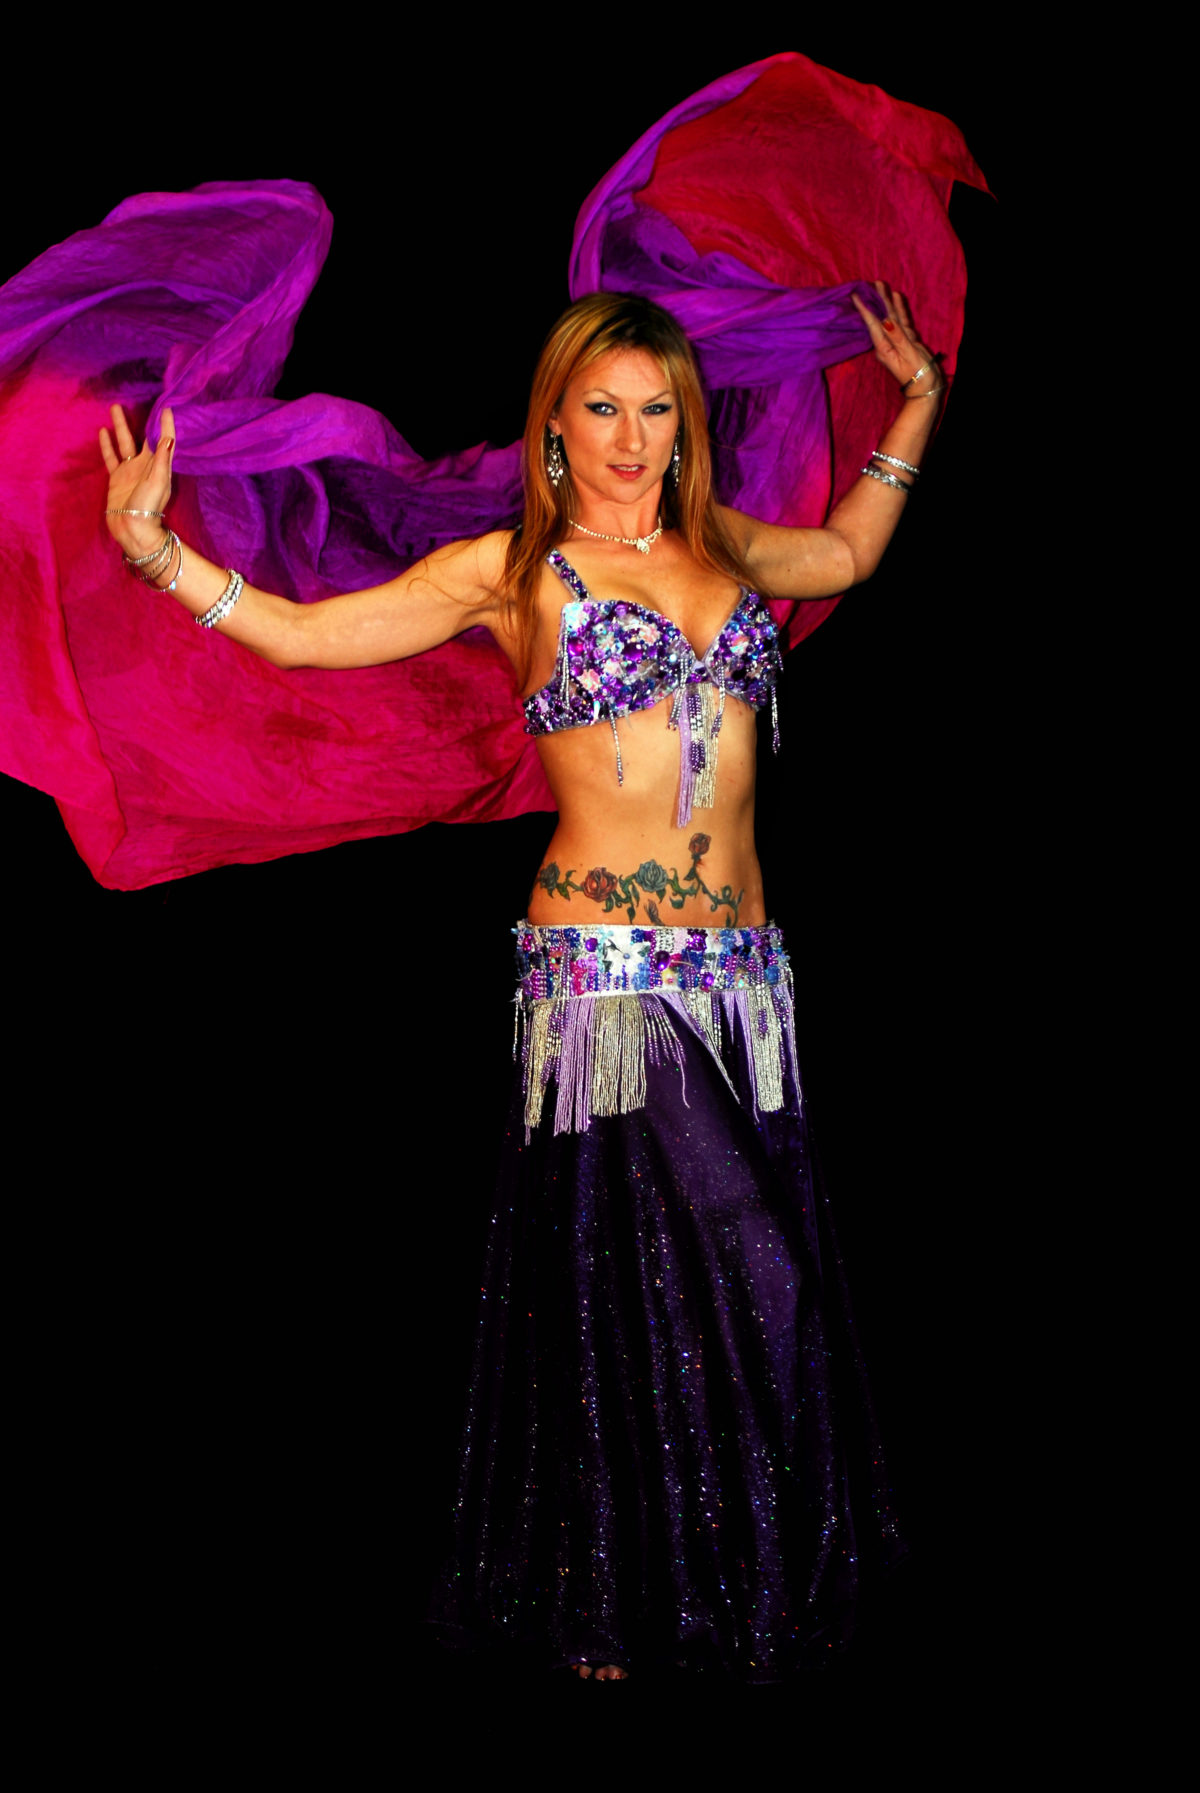 North Carolina Belly Dancer Mundi Broda Flamewater Circus